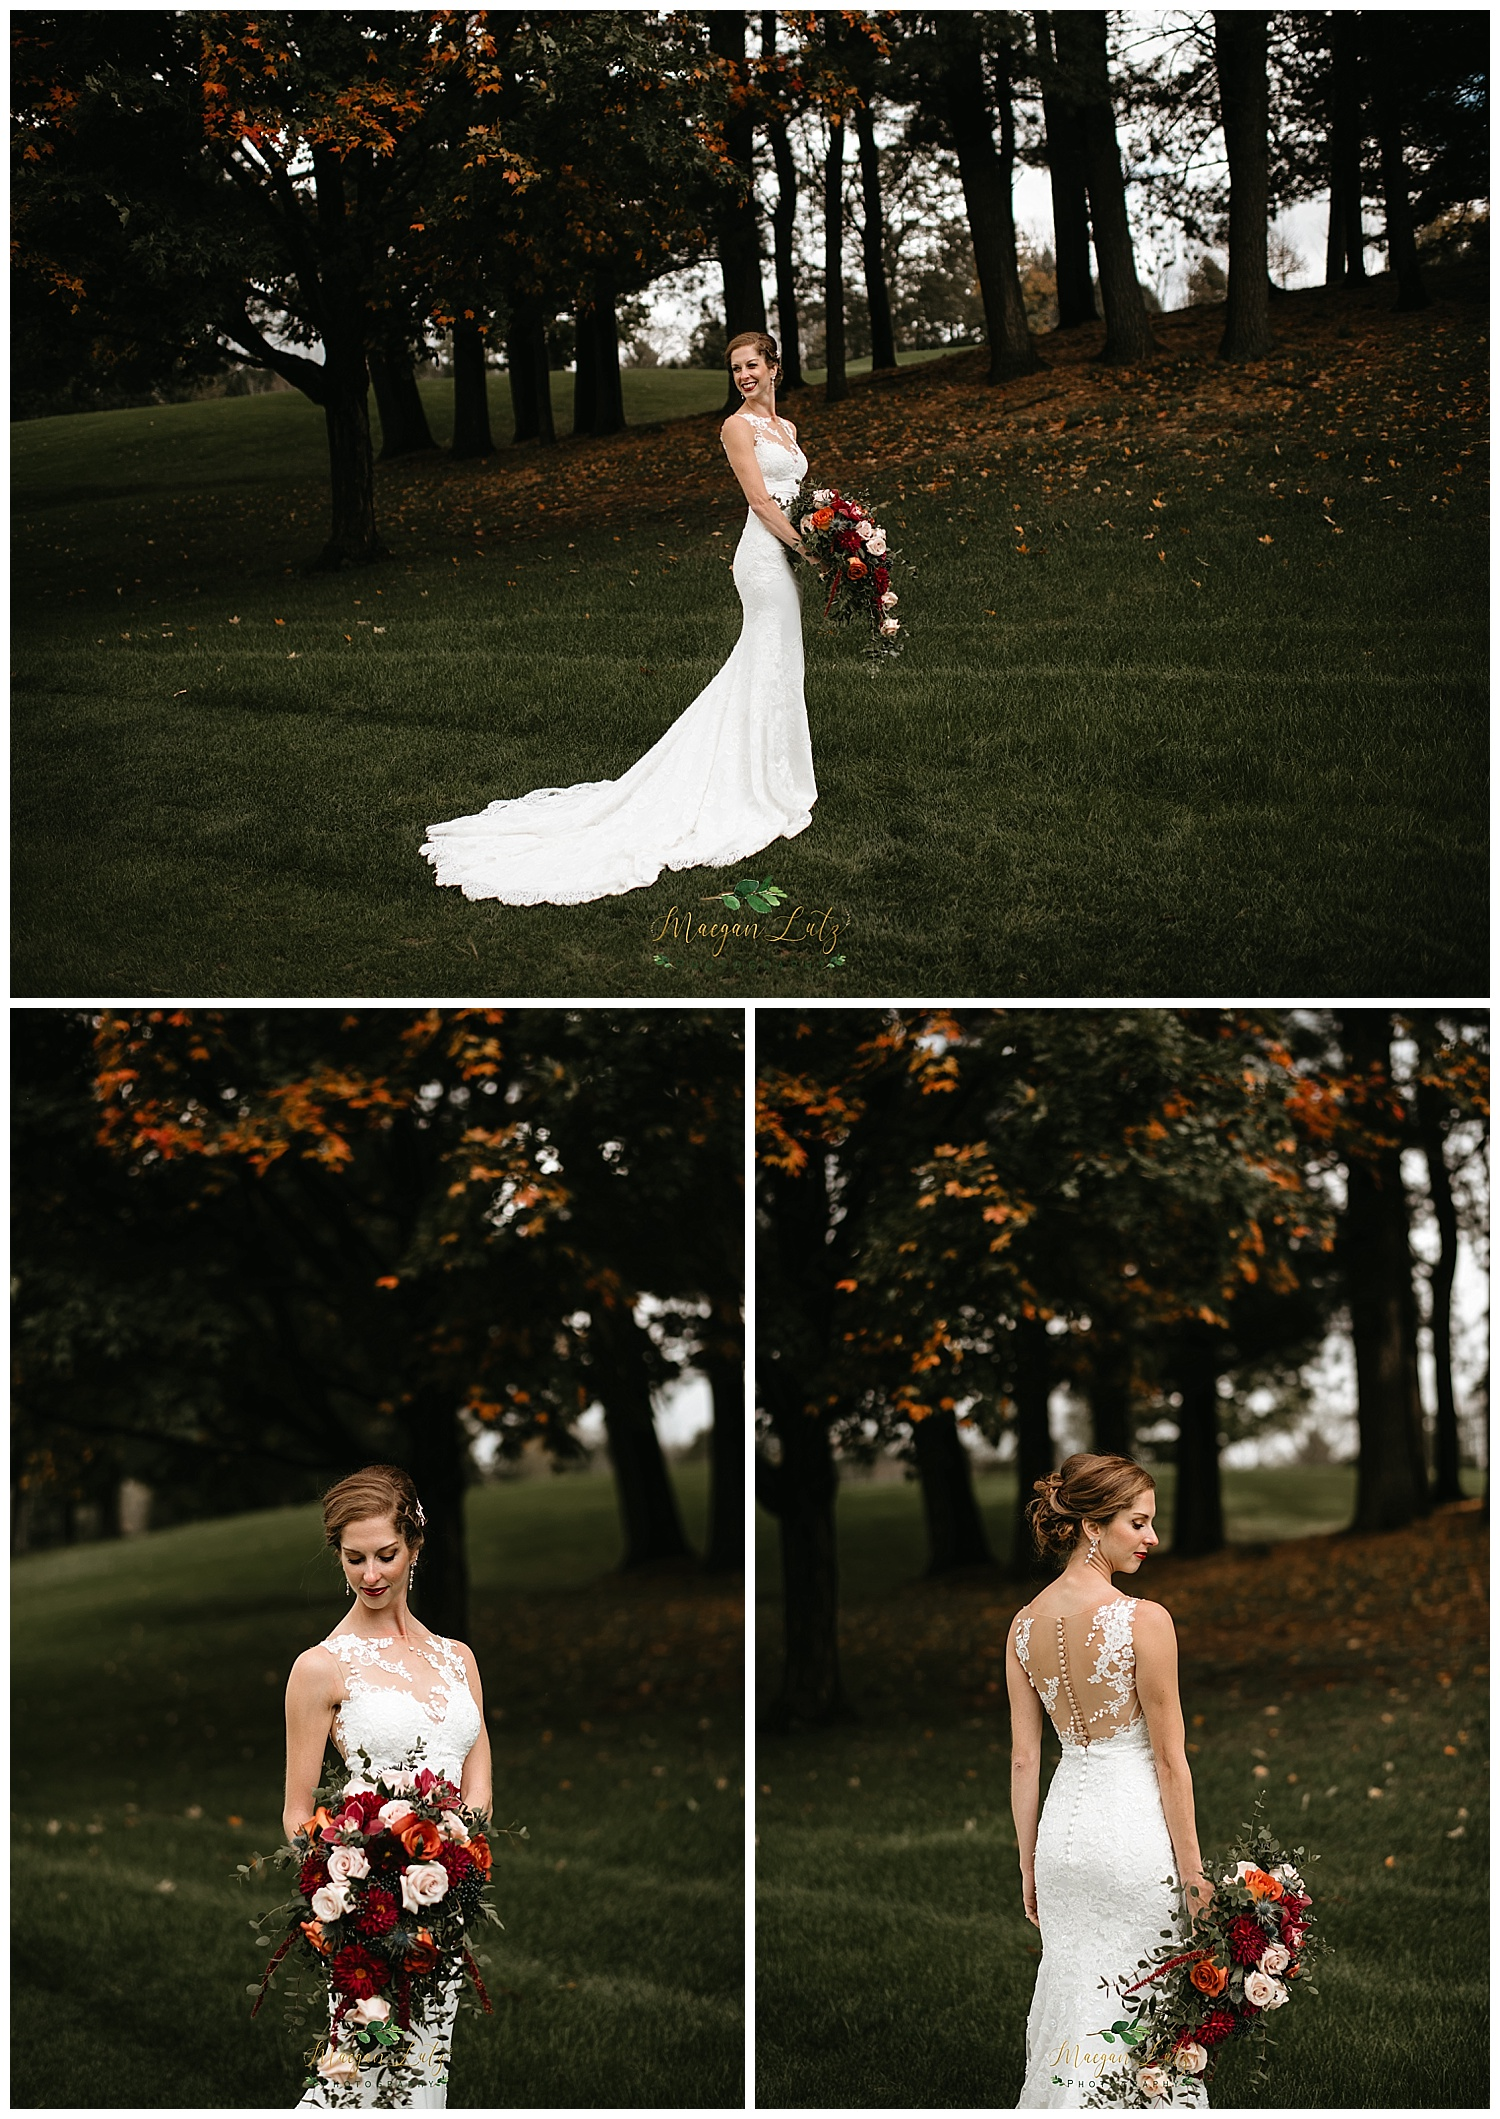 NEPA-wedding-photographer-at-Glen-Oak-Country-Club-Clarks-Summit-PA_0028.jpg